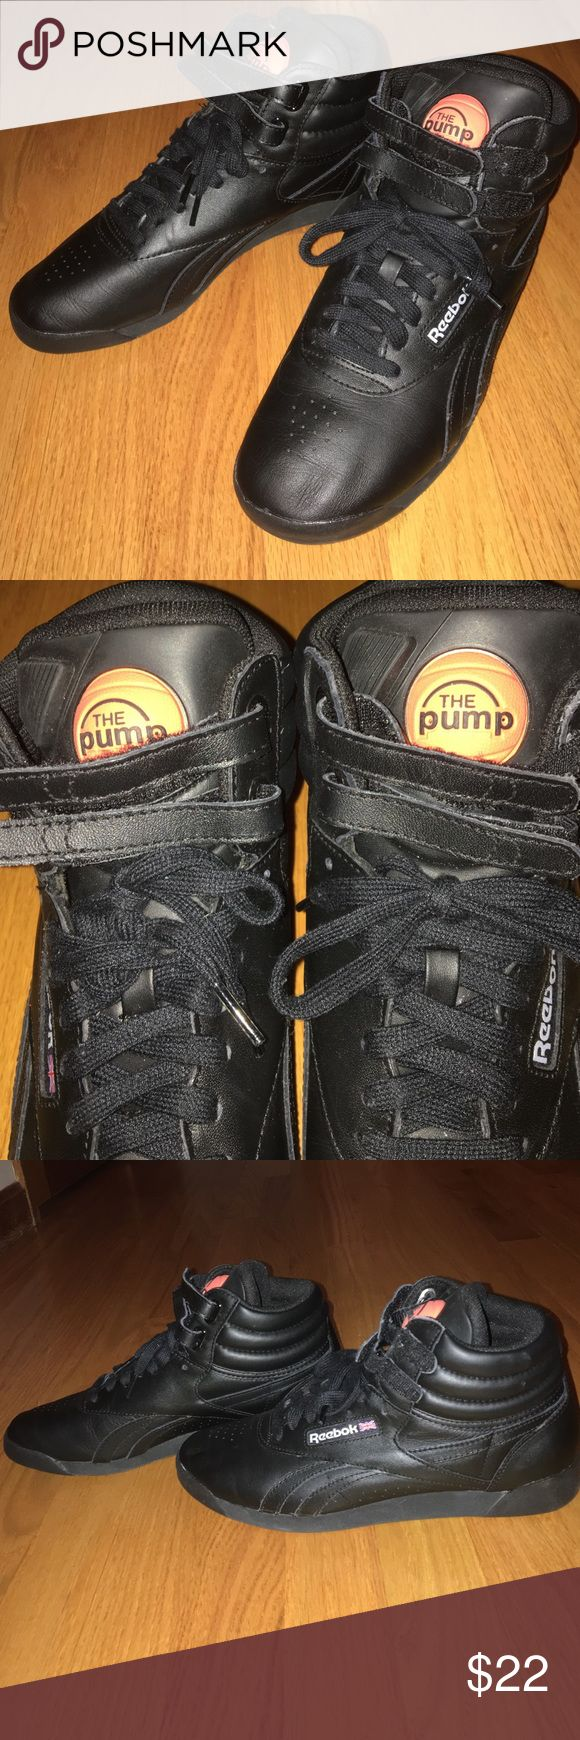 """Reebok Pump High Top Sneakers Reebok The Pump black high top sneakers with orange basketball """"The Pump"""" logo on tongue. Lace up with double Velcro at top Reebok Shoes Sneakers"""